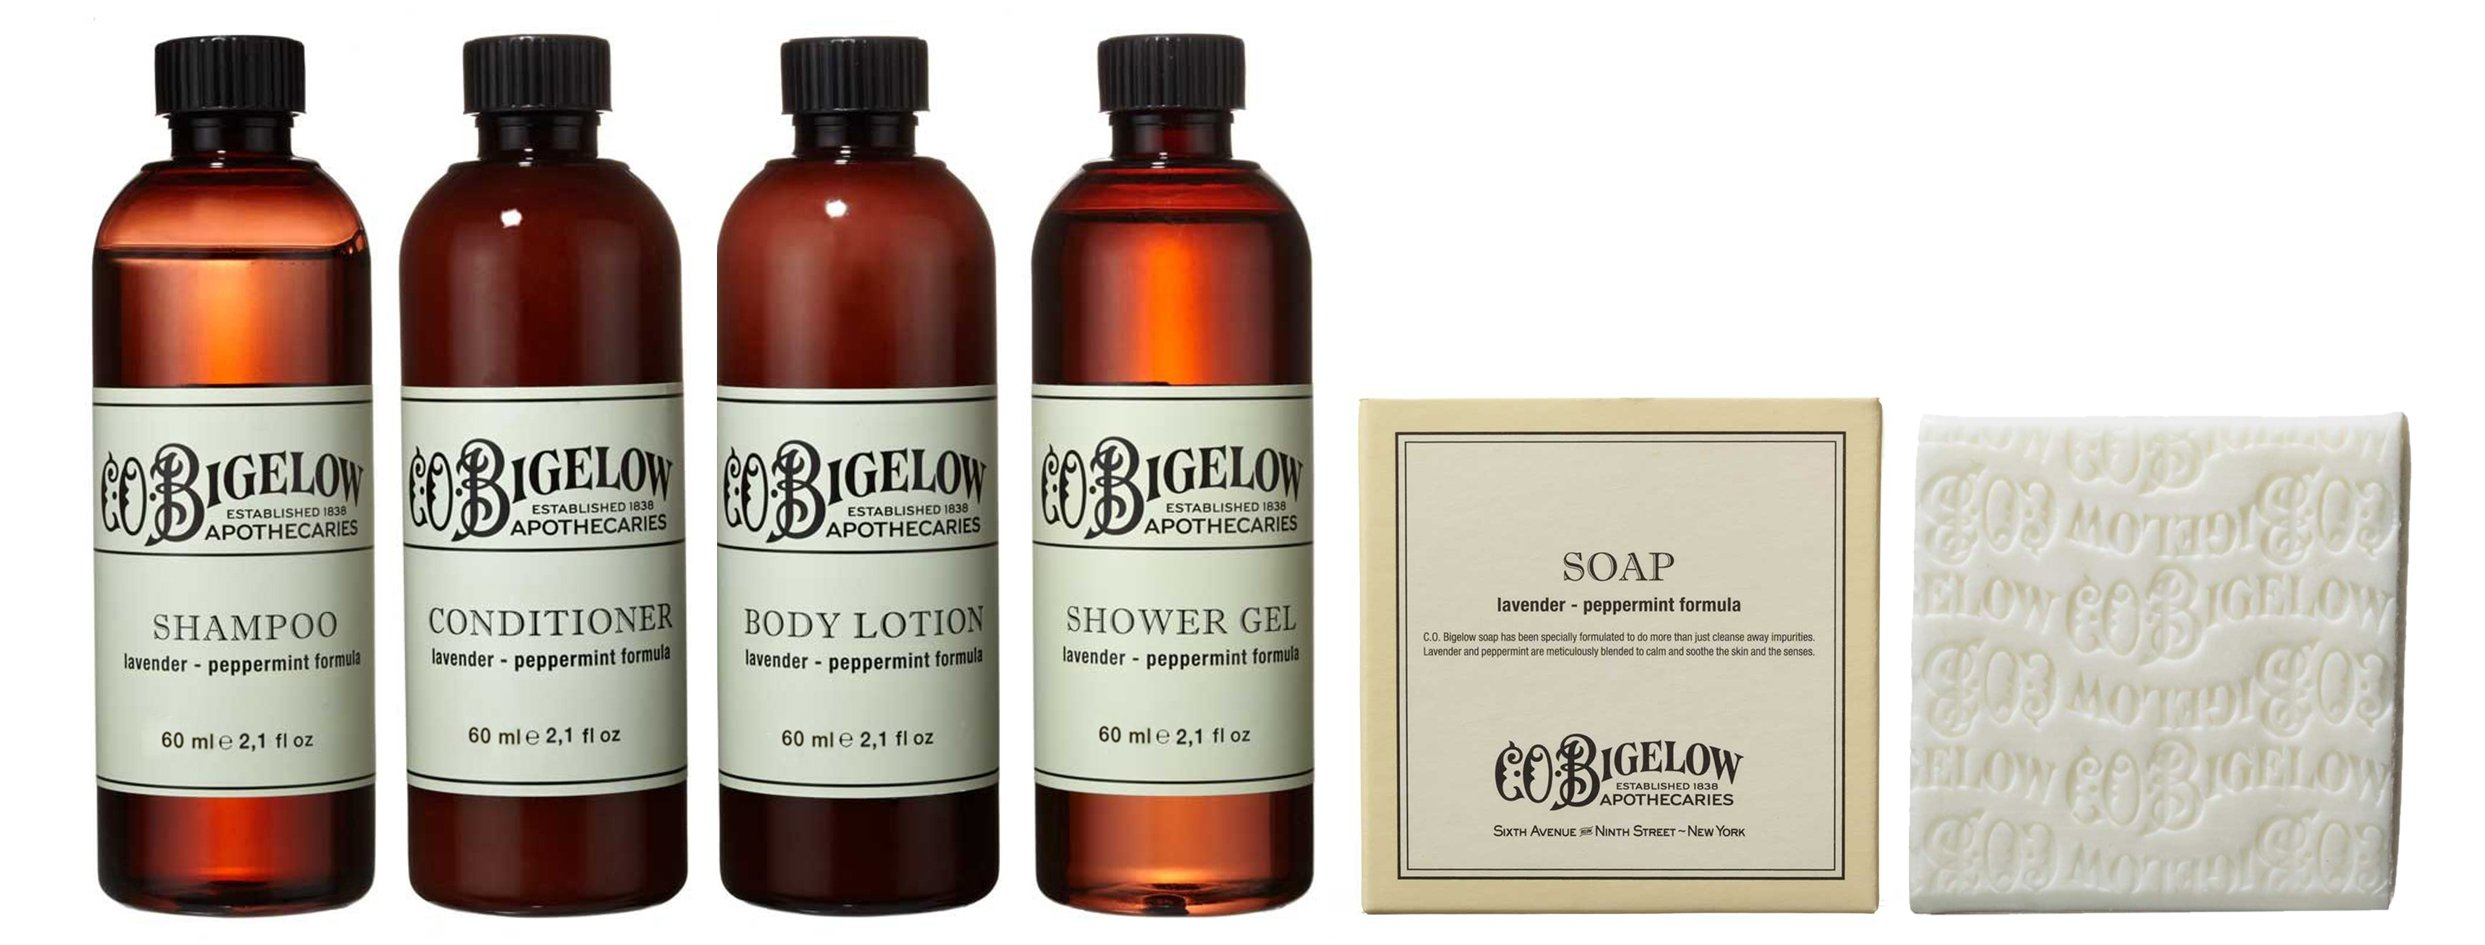 CO Bigelow Amenities Travel Set -Shampoo, Conditioner, Shower Gel, Lotion (2 oz) Body Soap (3.5 oz) In Clear Travel Pouch